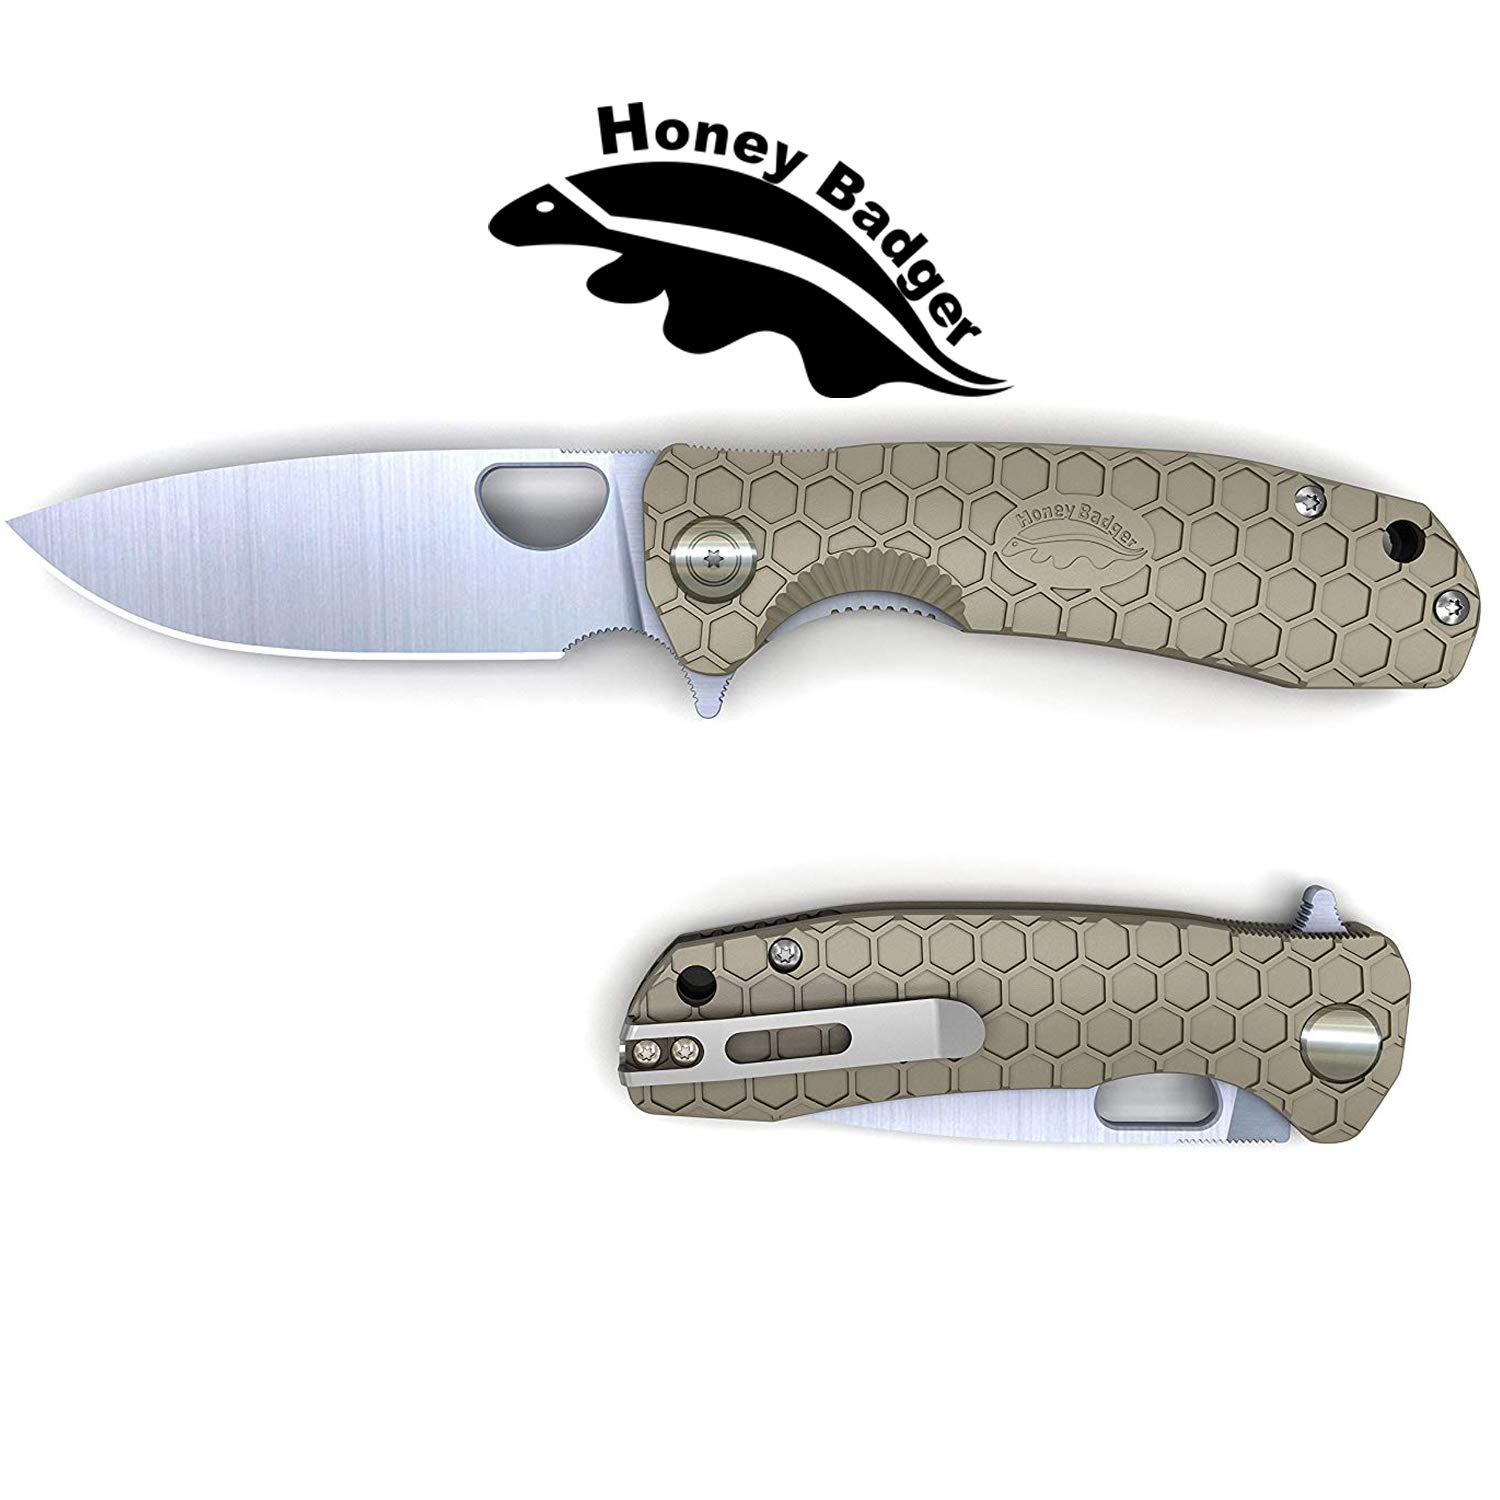 Honey Badger Pocket Knife EDC Flipper Liner Lock Folding Tactical Hunting Fishing Knife 8cr13MOV Steel Deep Pocket Carry Gift Box with Torx Wrench (Tan, Medium 2.96oz - 4.1'' Closed - 3.2'' Blade) by Western Active